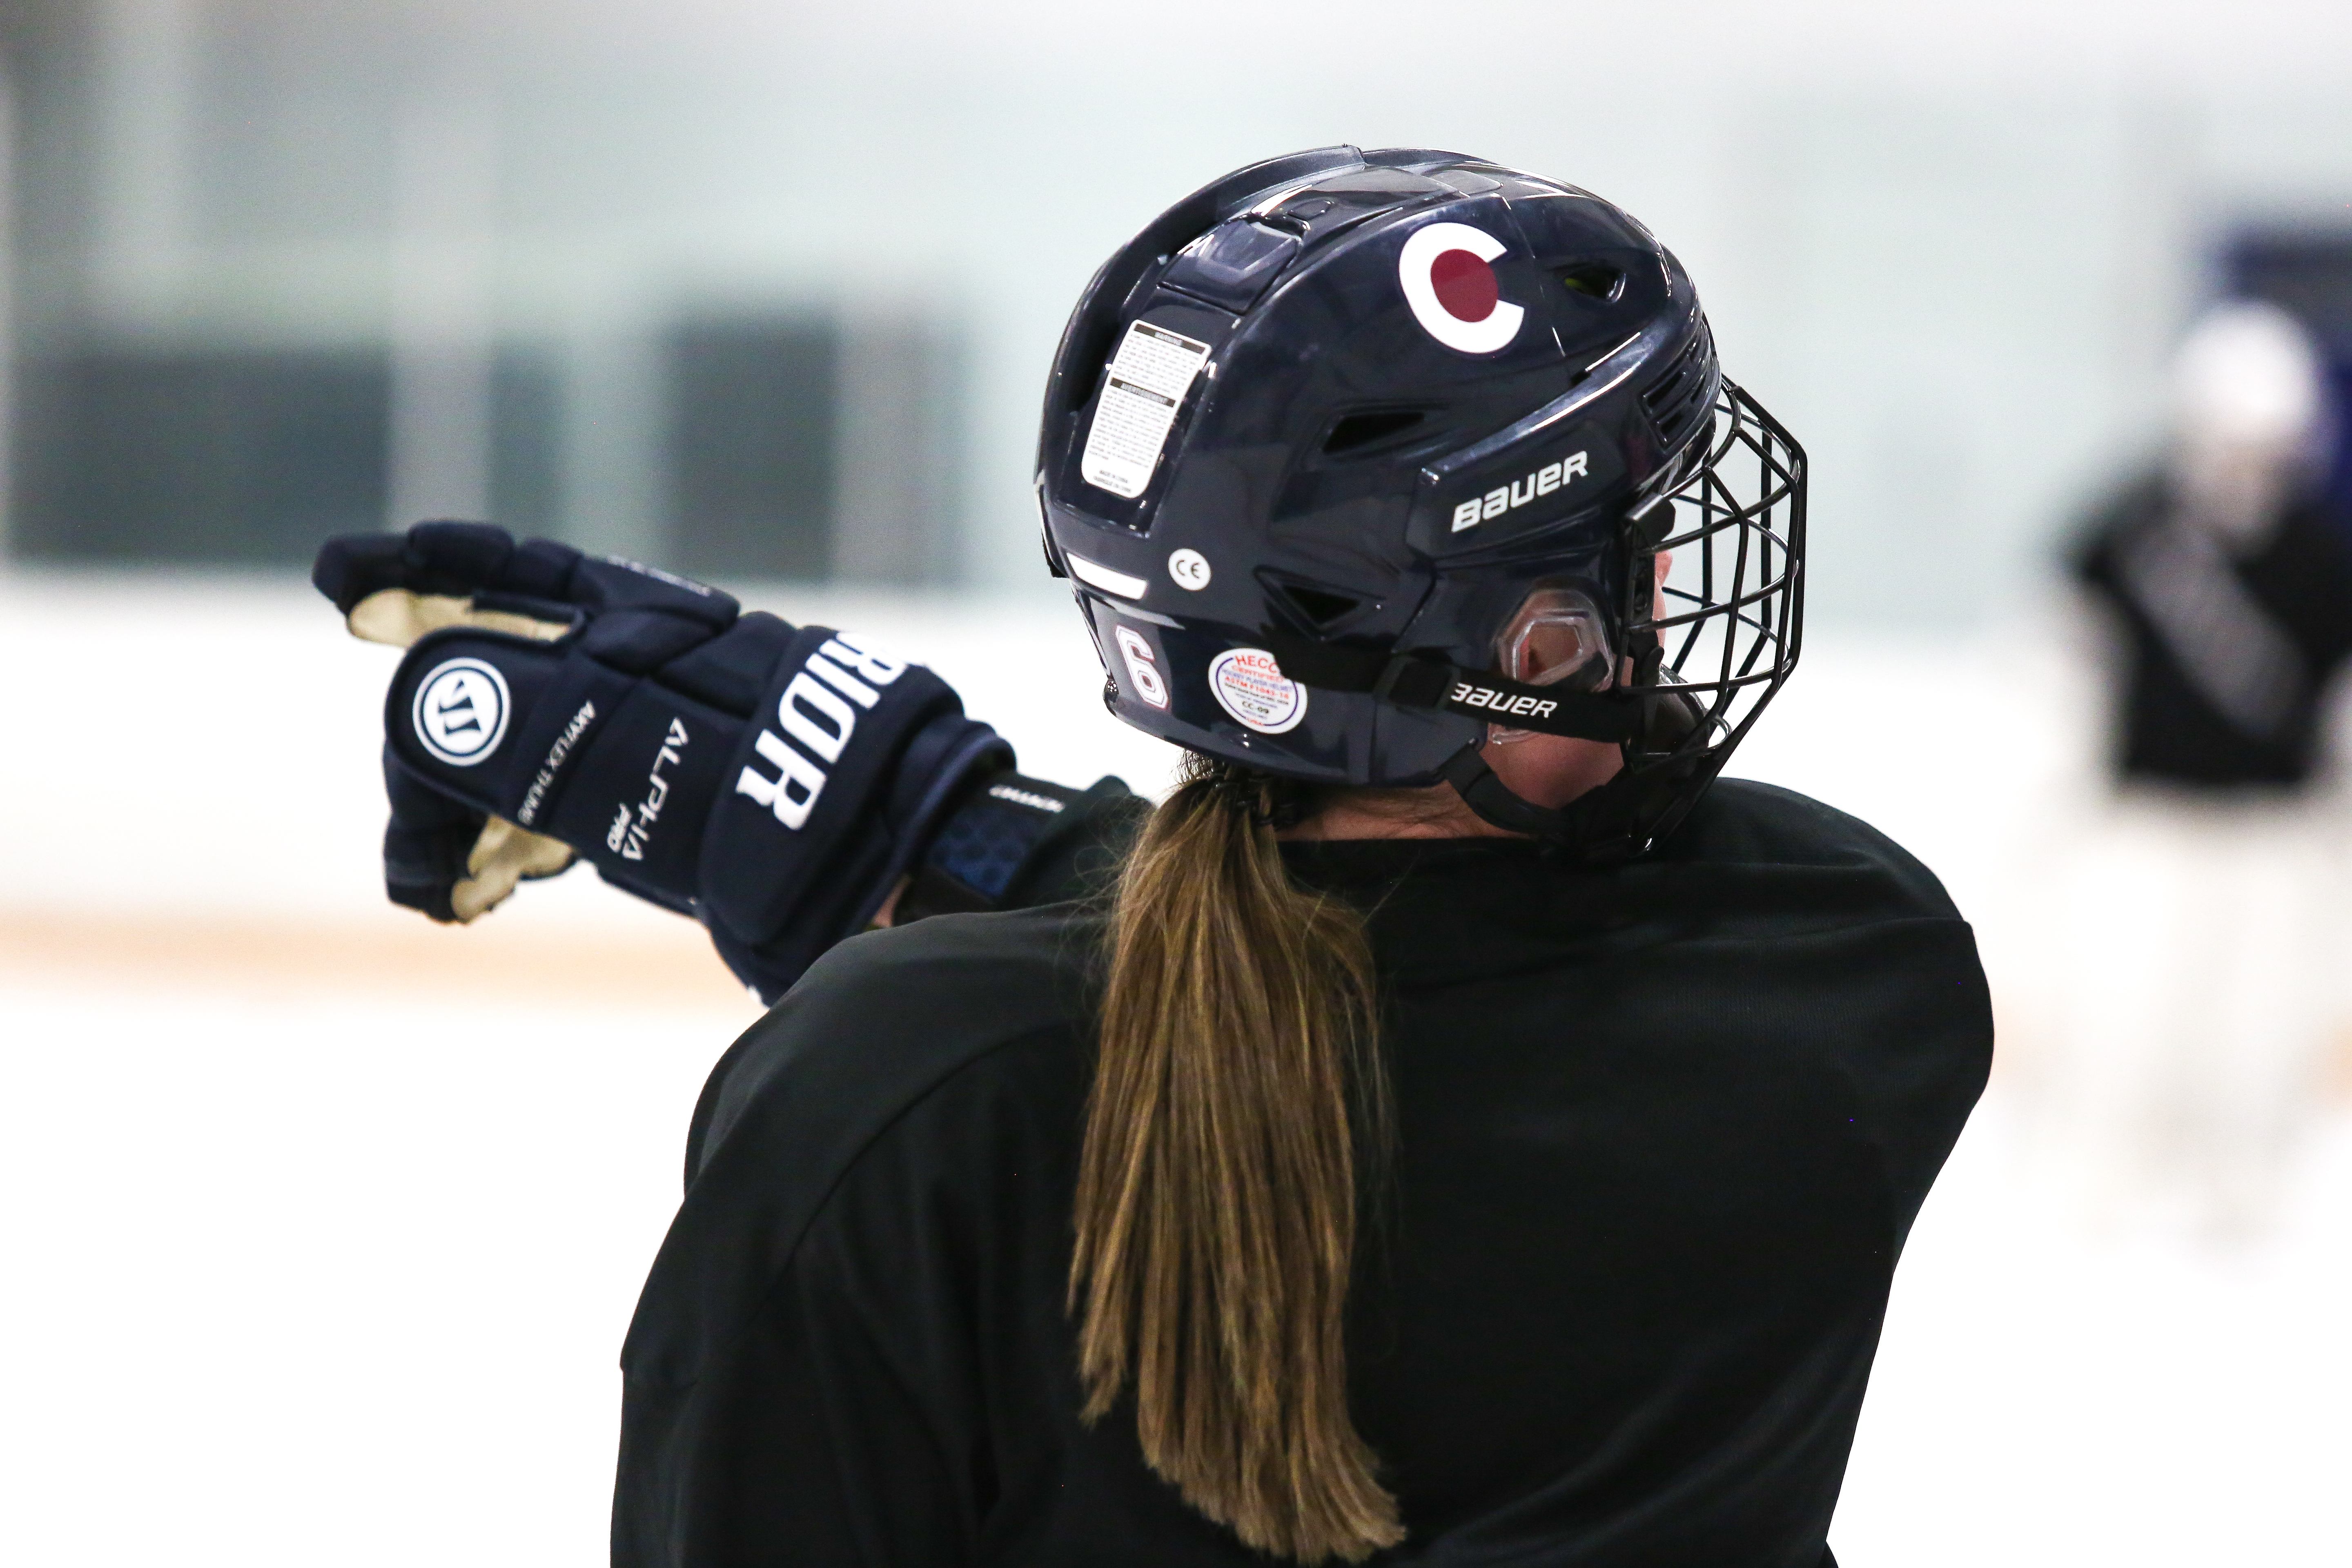 Team Colorado will be a member of the National Girls Hockey League beginning this upcoming season. Photo by SportsEngine